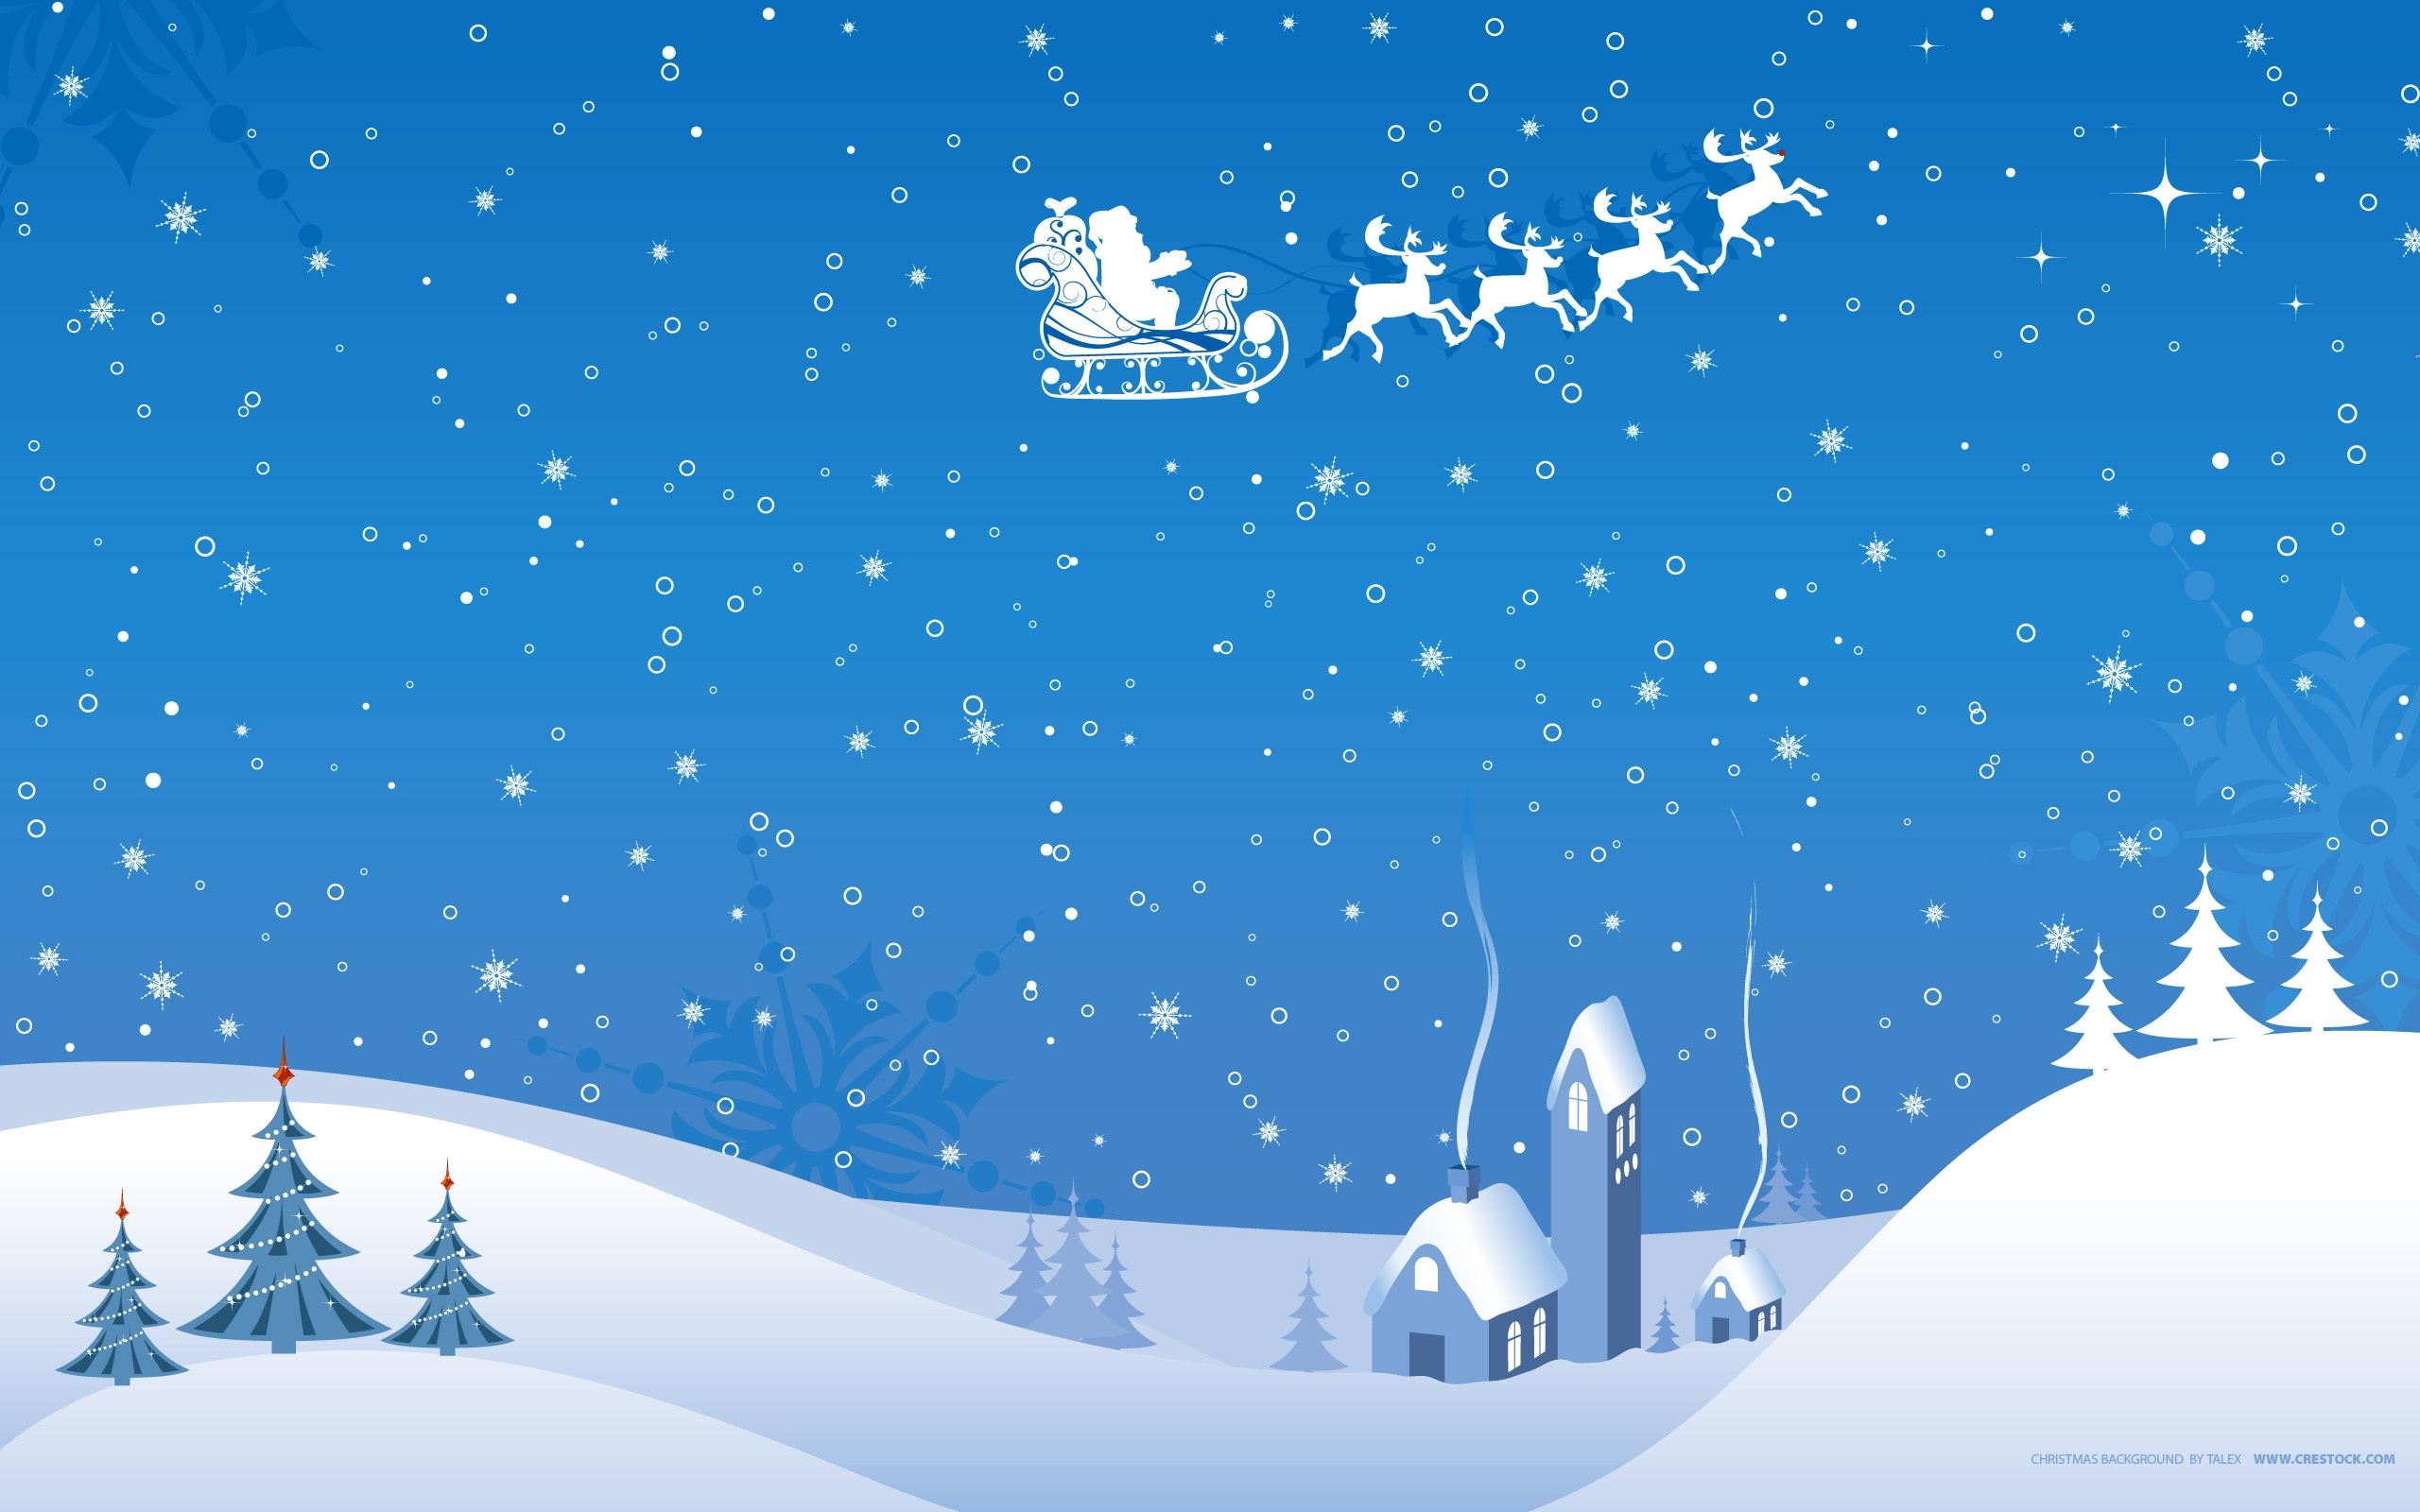 christmas winter vector wallpapers in jpg format for free download rh all free download com winter vector frame winter vector free